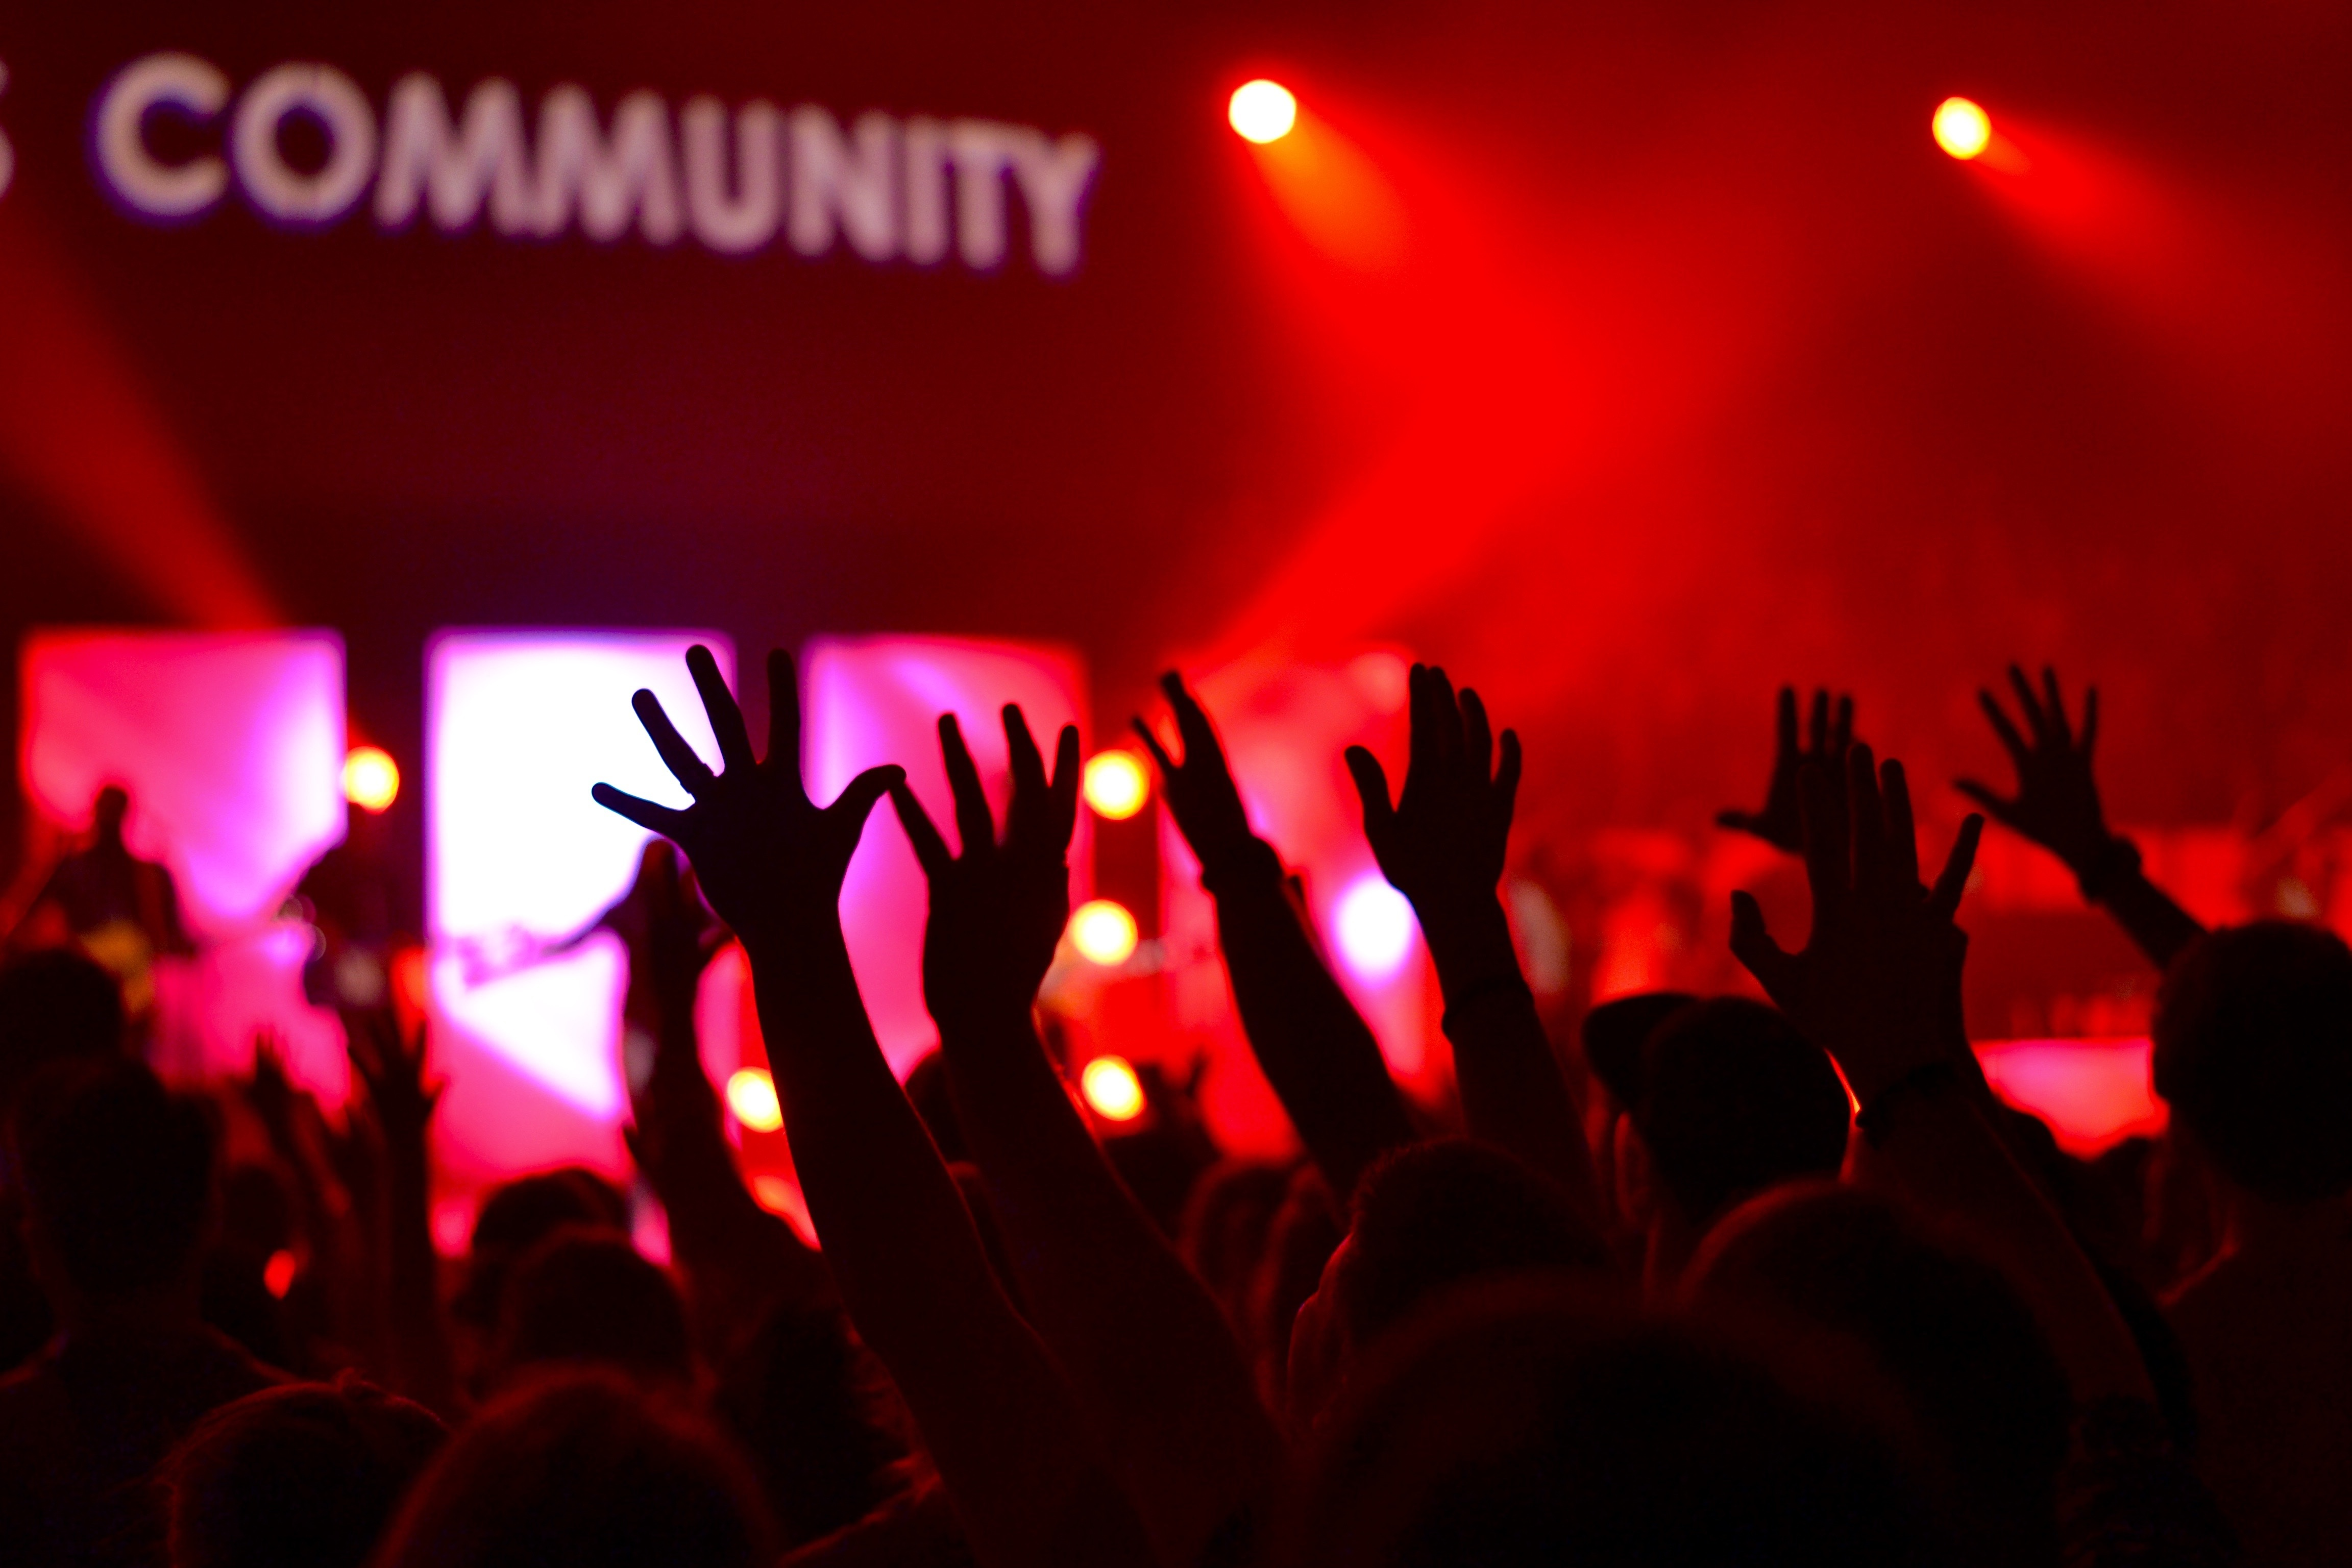 community_networking_diy_independent_music_band_artists_underground_guide_tips